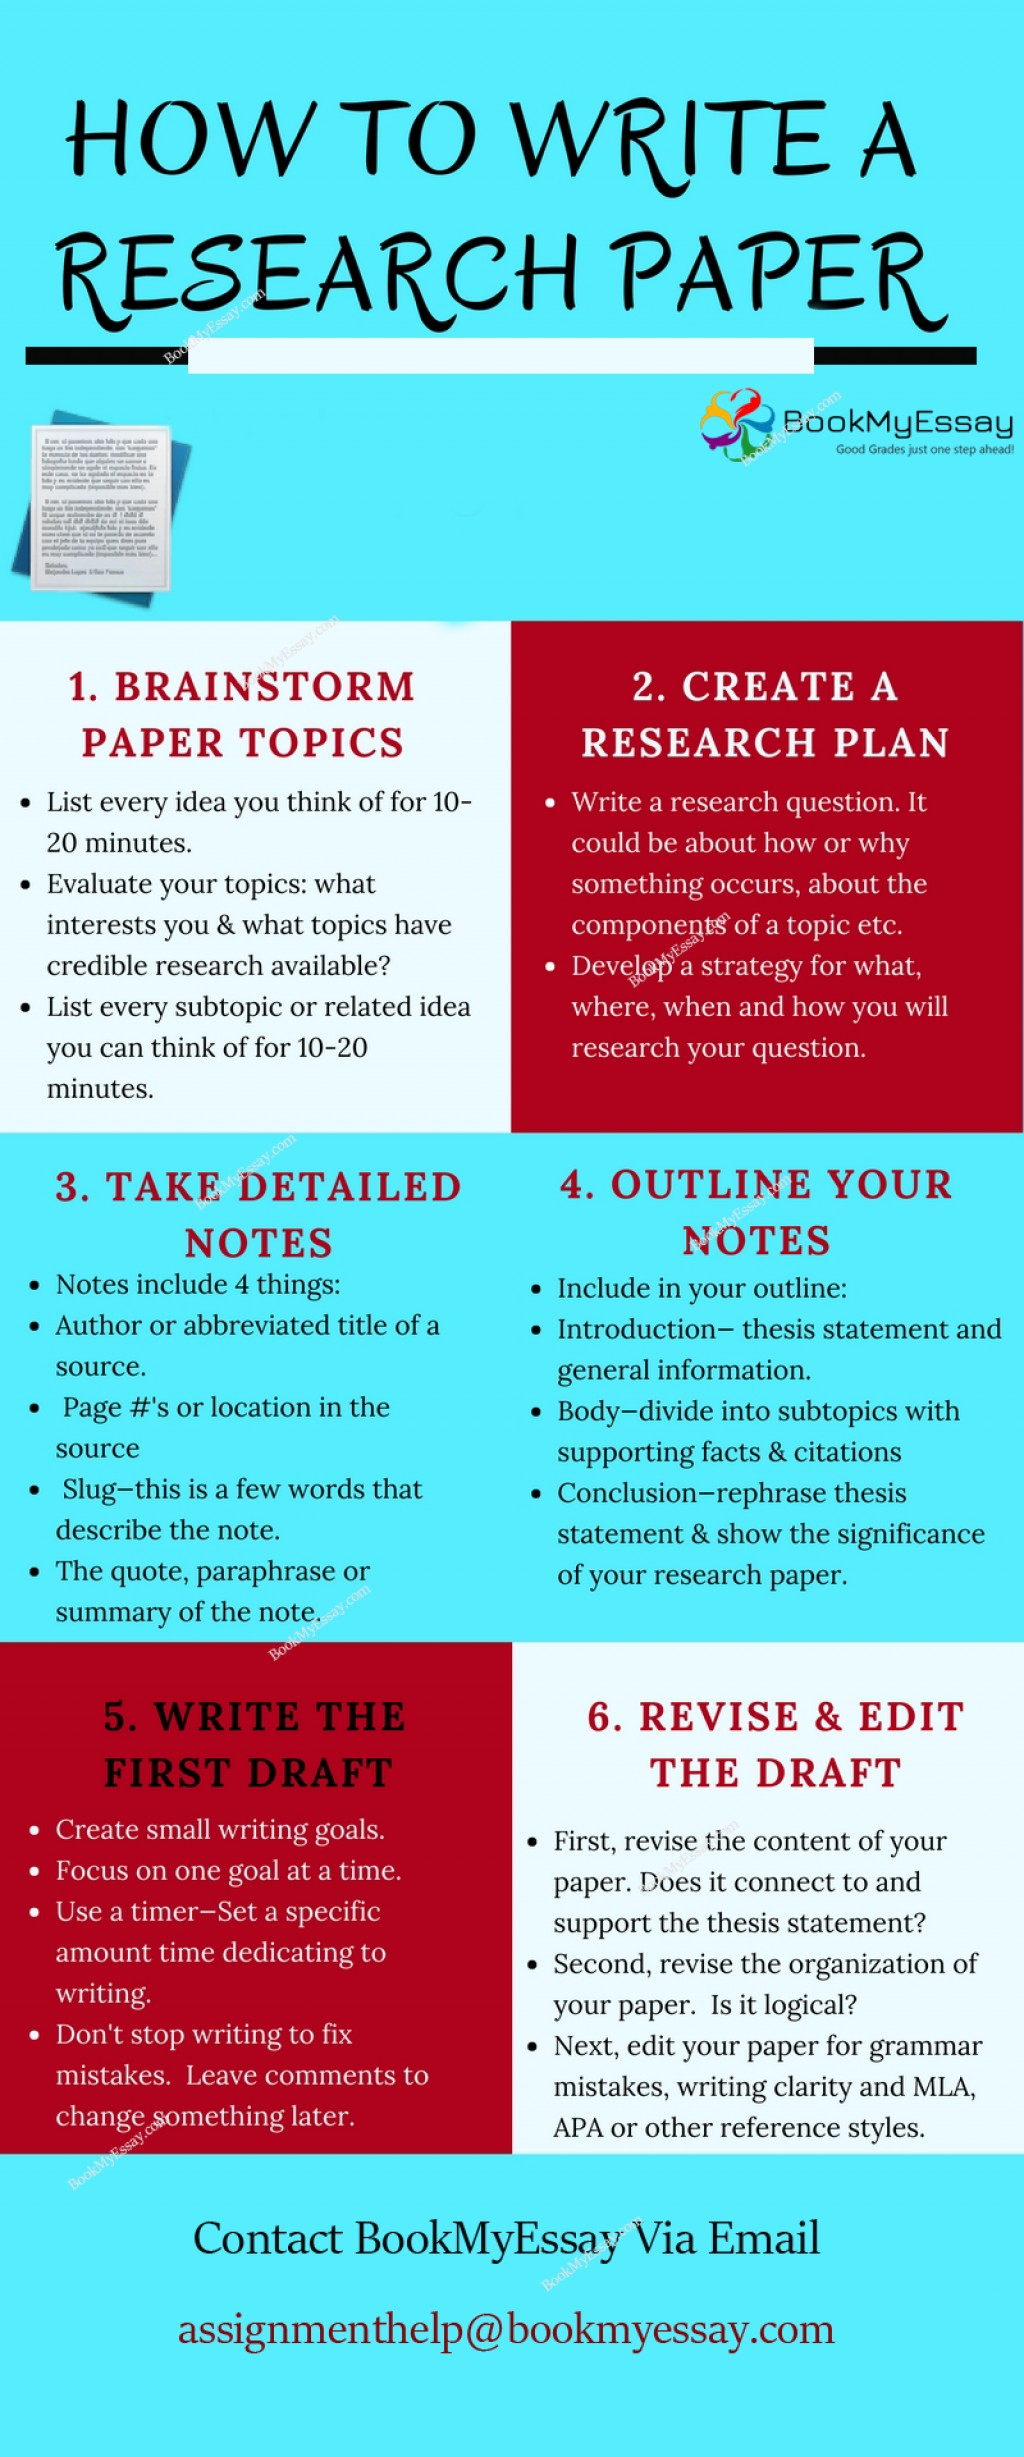 002 Researchs Writing Service Outstanding Research Papers Paper Services In Chennai Reddit India Large